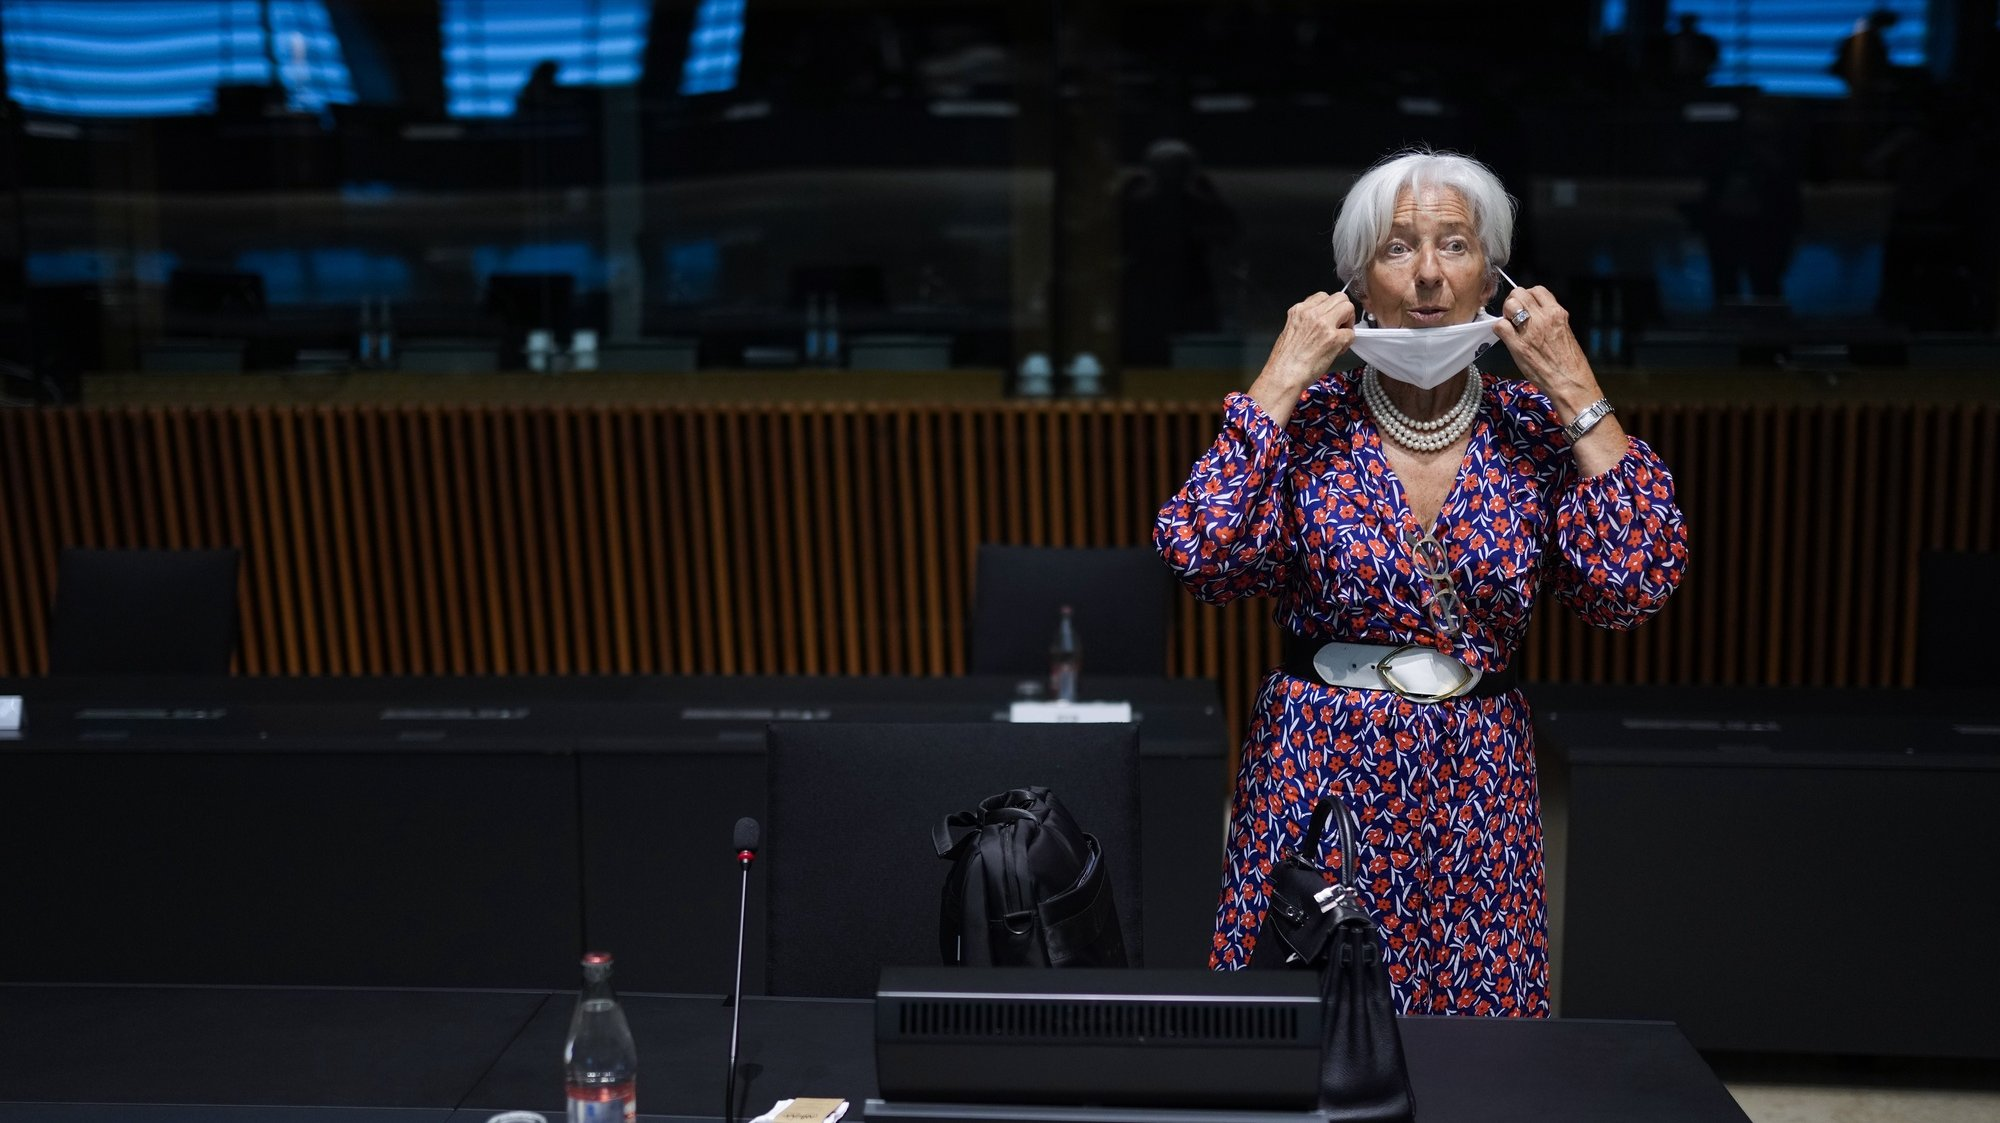 epa09279777 European Central Bank (ECB) President Christine Lagarde adjusts his protective face mask as she arrives to a meeting of Eurogroup Finance Ministers at the European Council building in Luxembourg, 17 June 2021.  EPA/FRANCISCO SECO / POOL